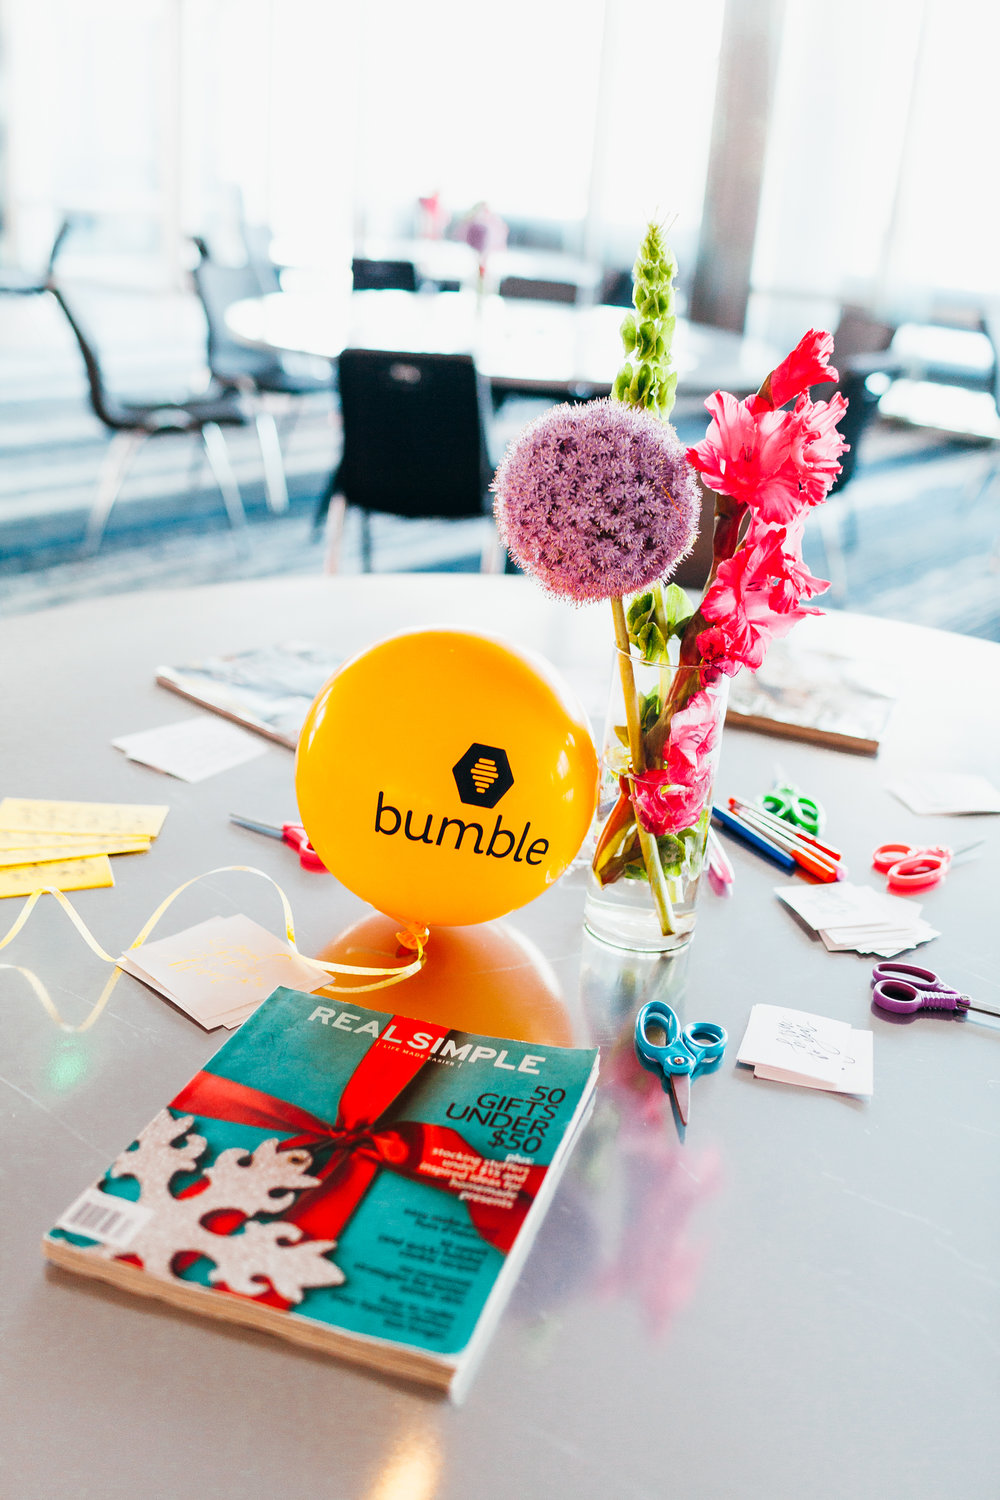 bumble-bff-dallas-launch-event-6448.jpg